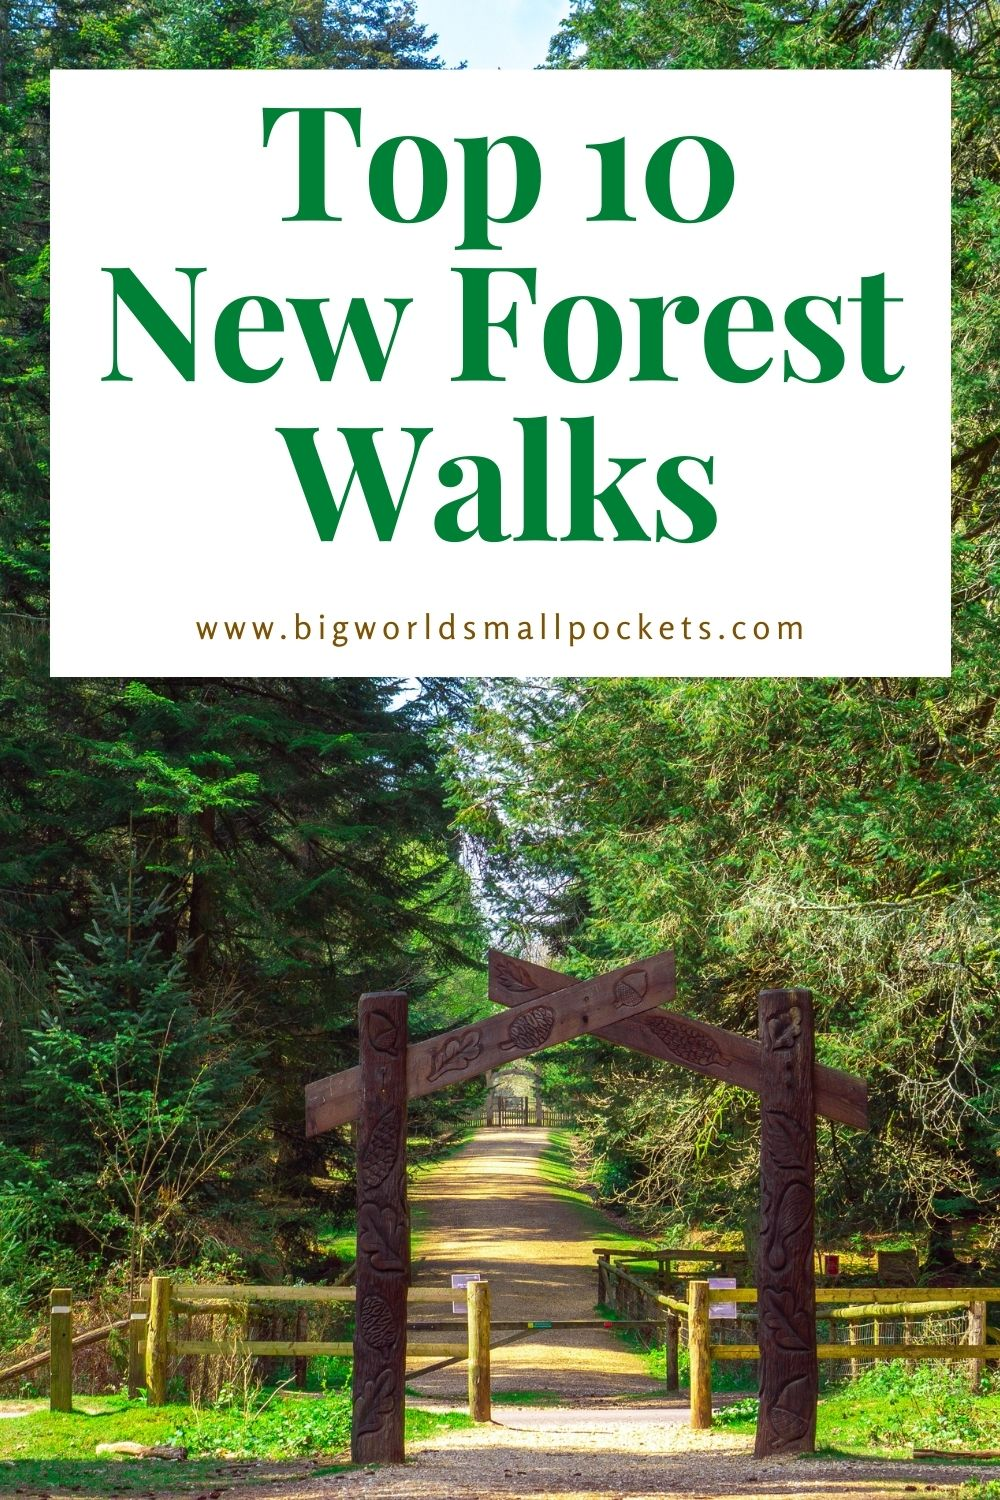 The 10 Best Walks in the New Forest, England